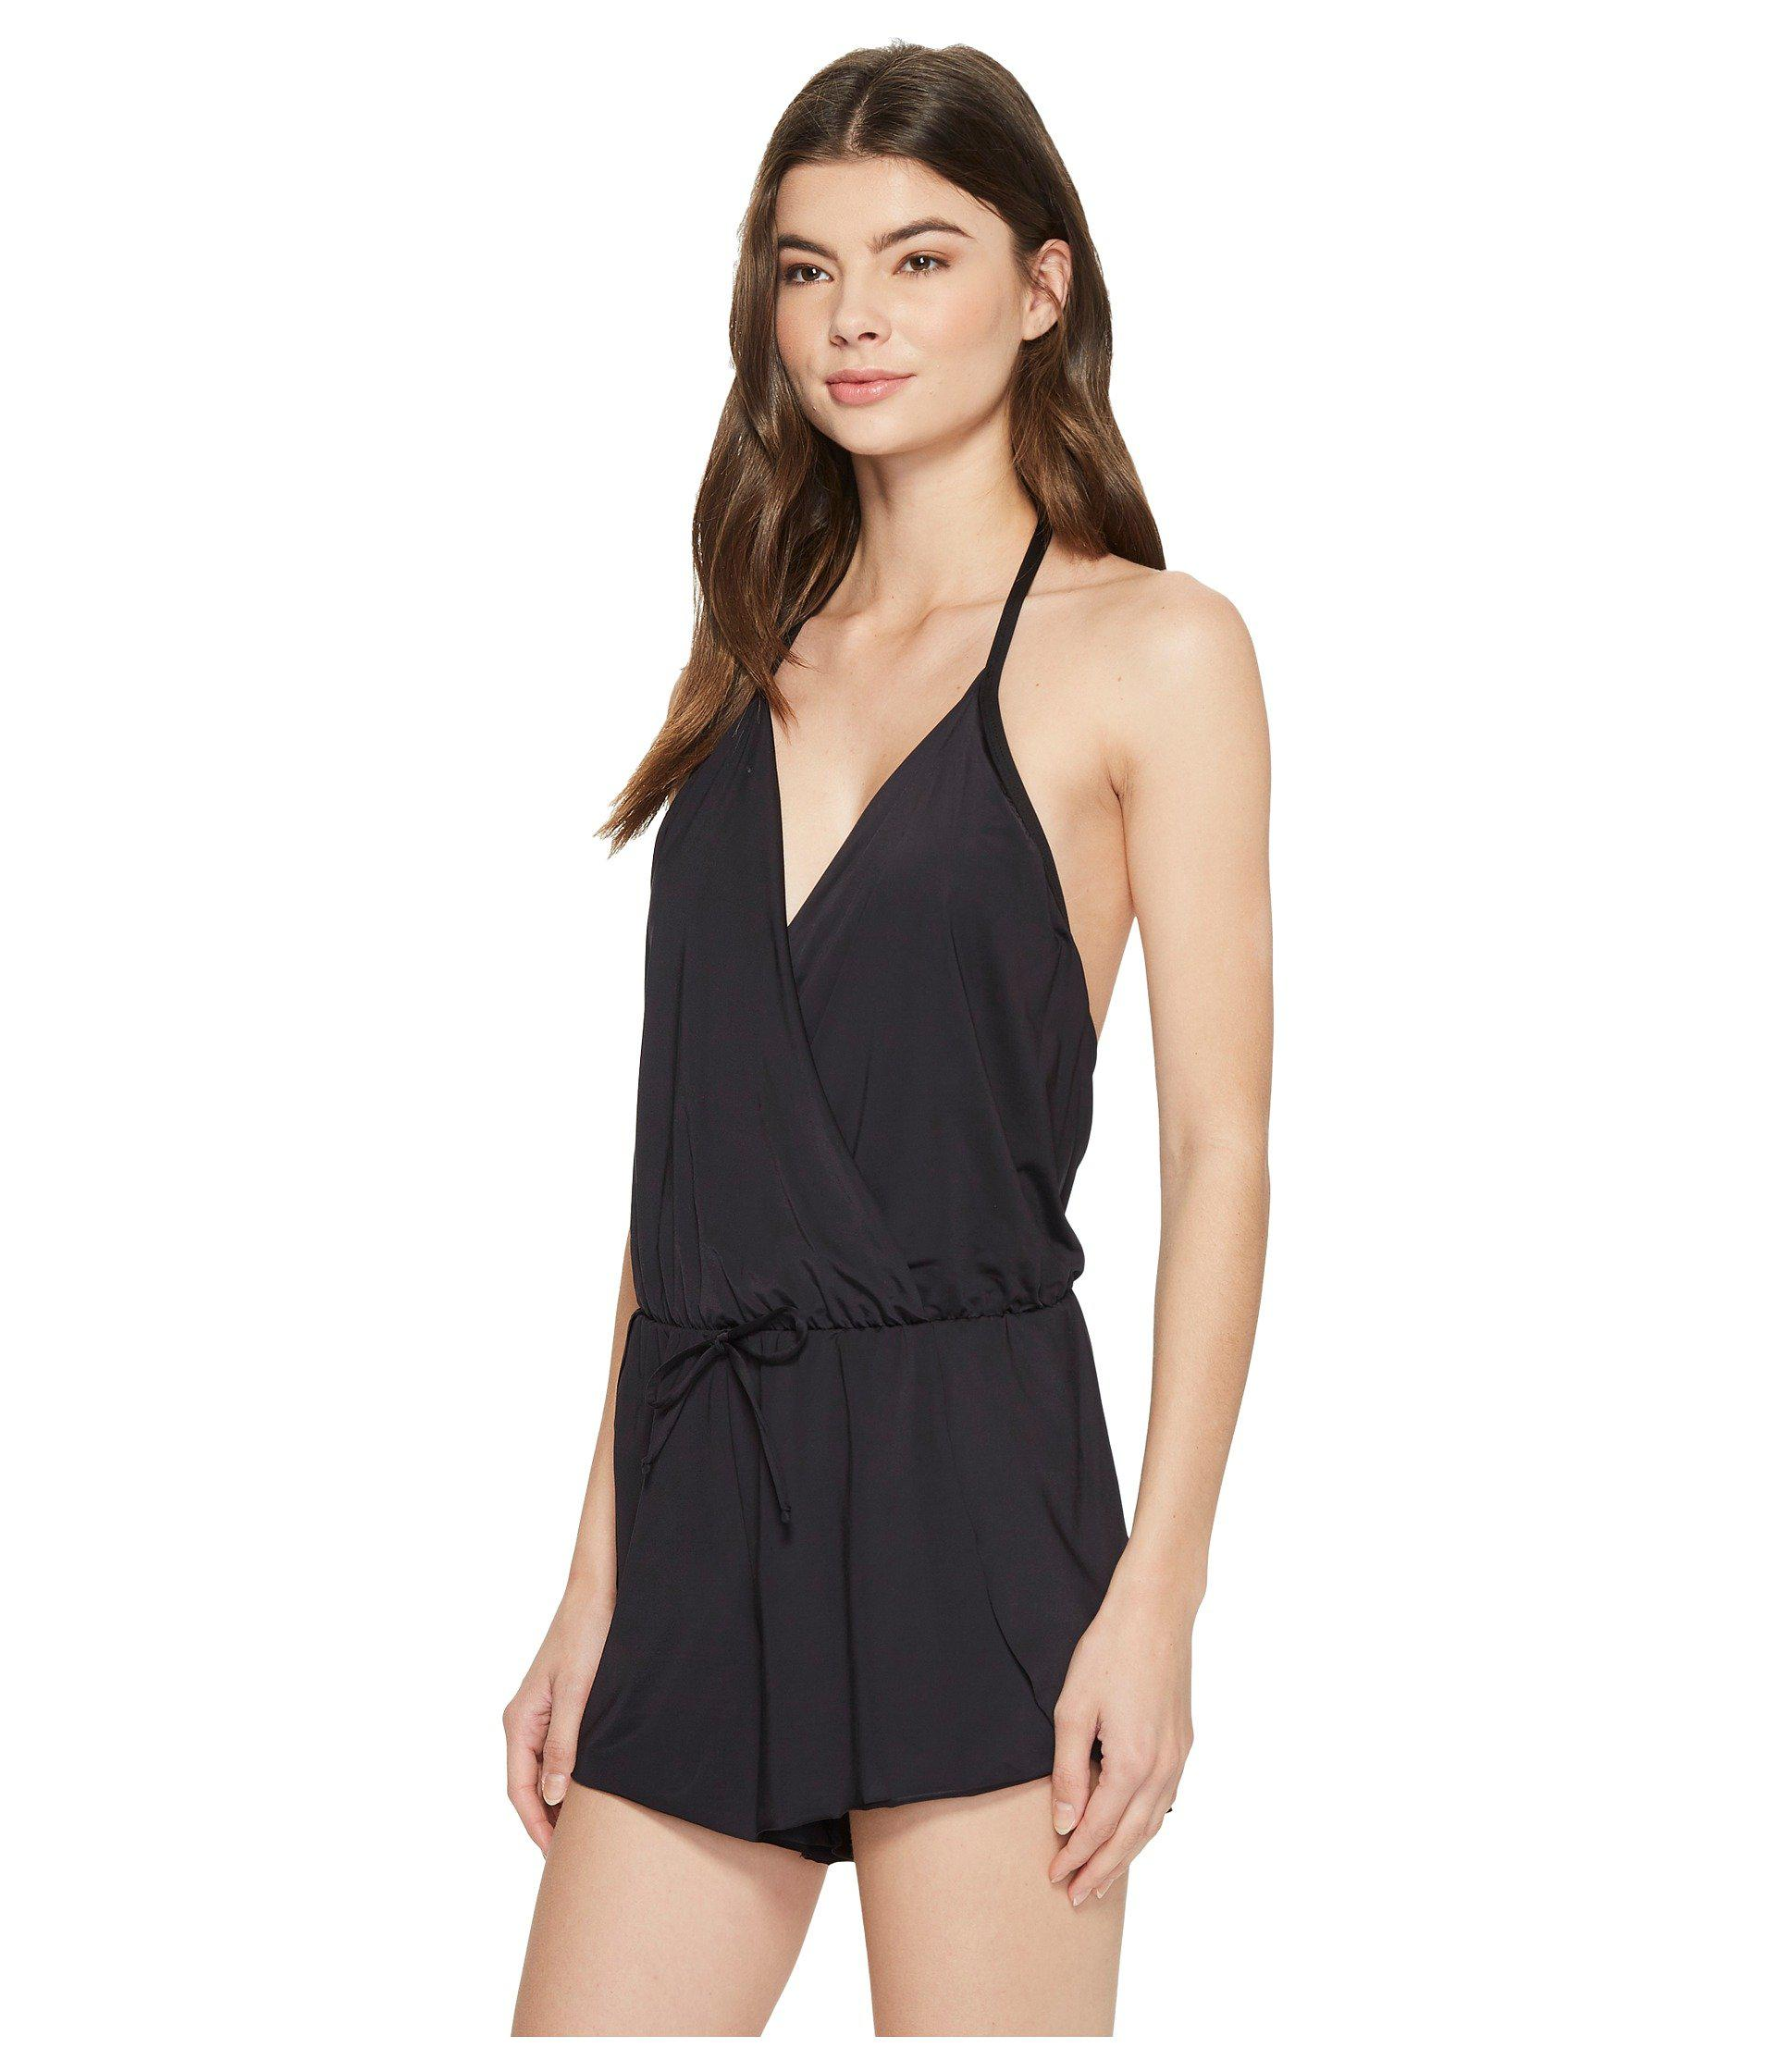 ab5bf06c79b Lyst - Kenneth Cole Ready To Ruffle Romper Cover-up (black) Women s ...